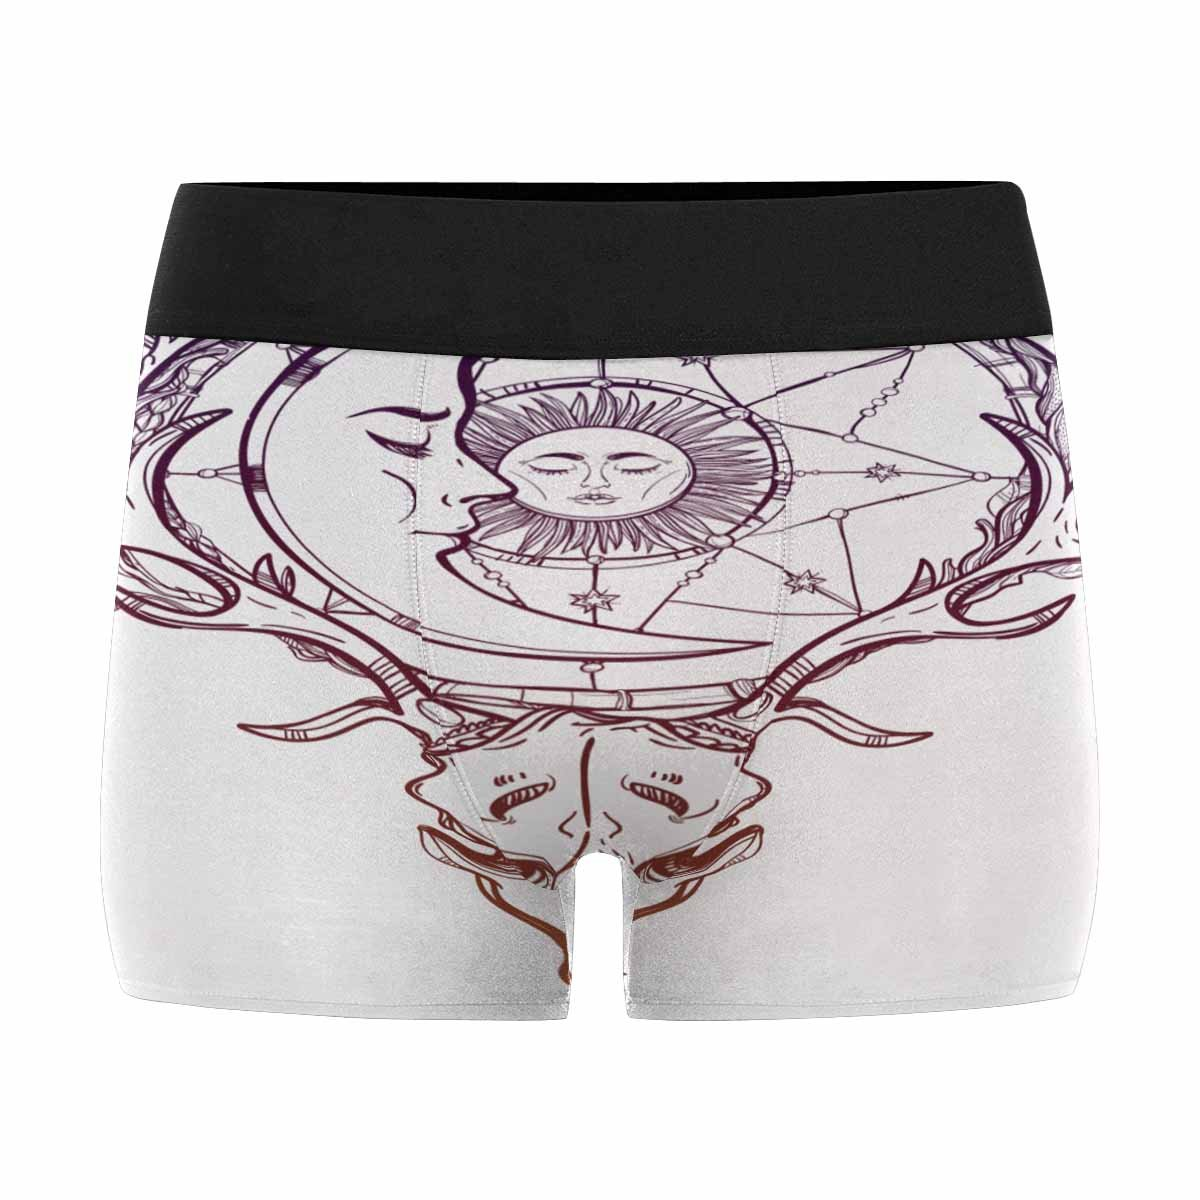 INTERESTPRINT Mens Boxer Briefs Vintage Deer Scull with Antlers Branches Dream Catcher